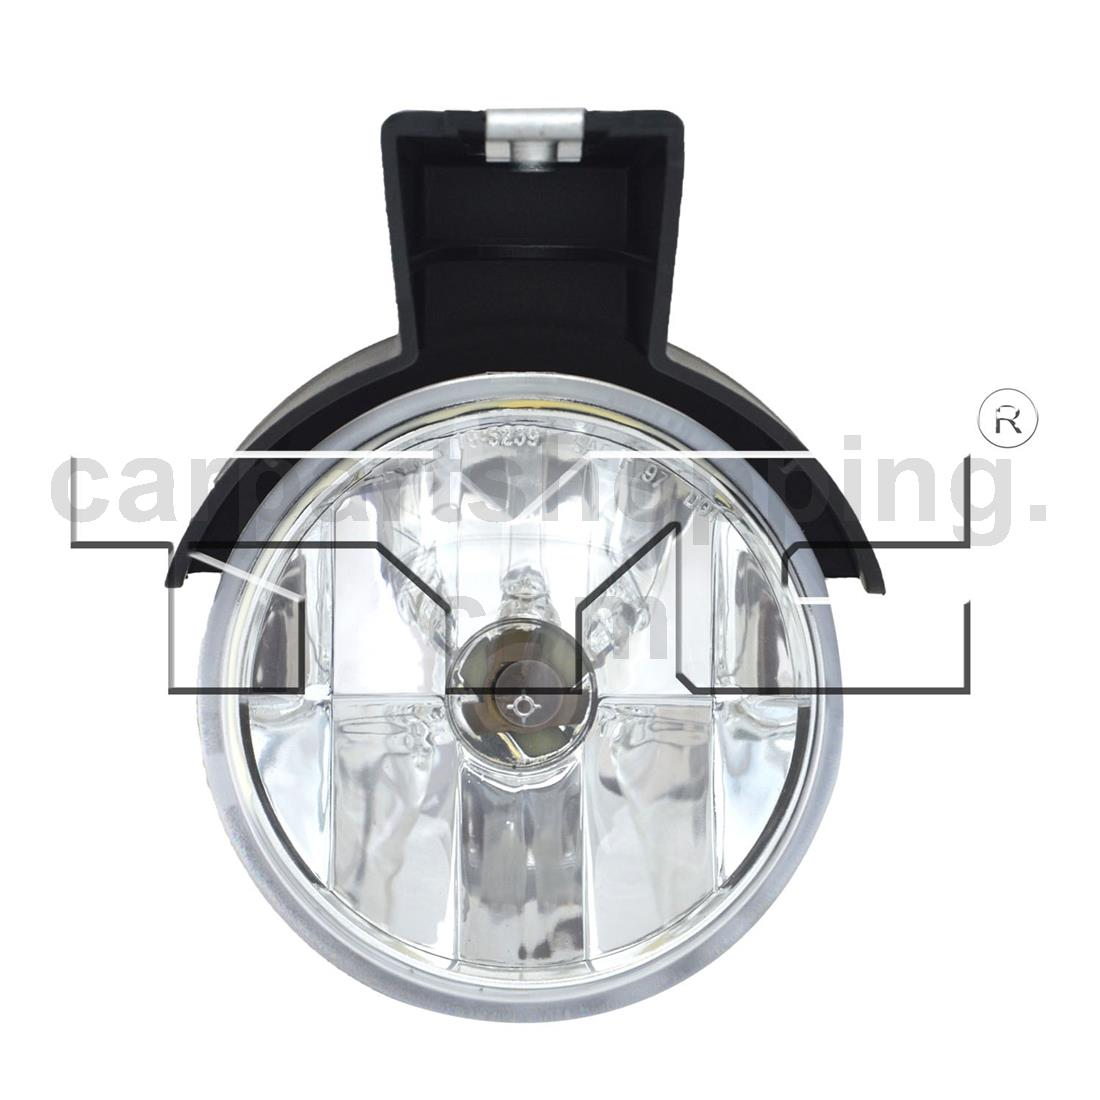 4 Tyc Headlight Assembly Fog Light Assembly Left Right For